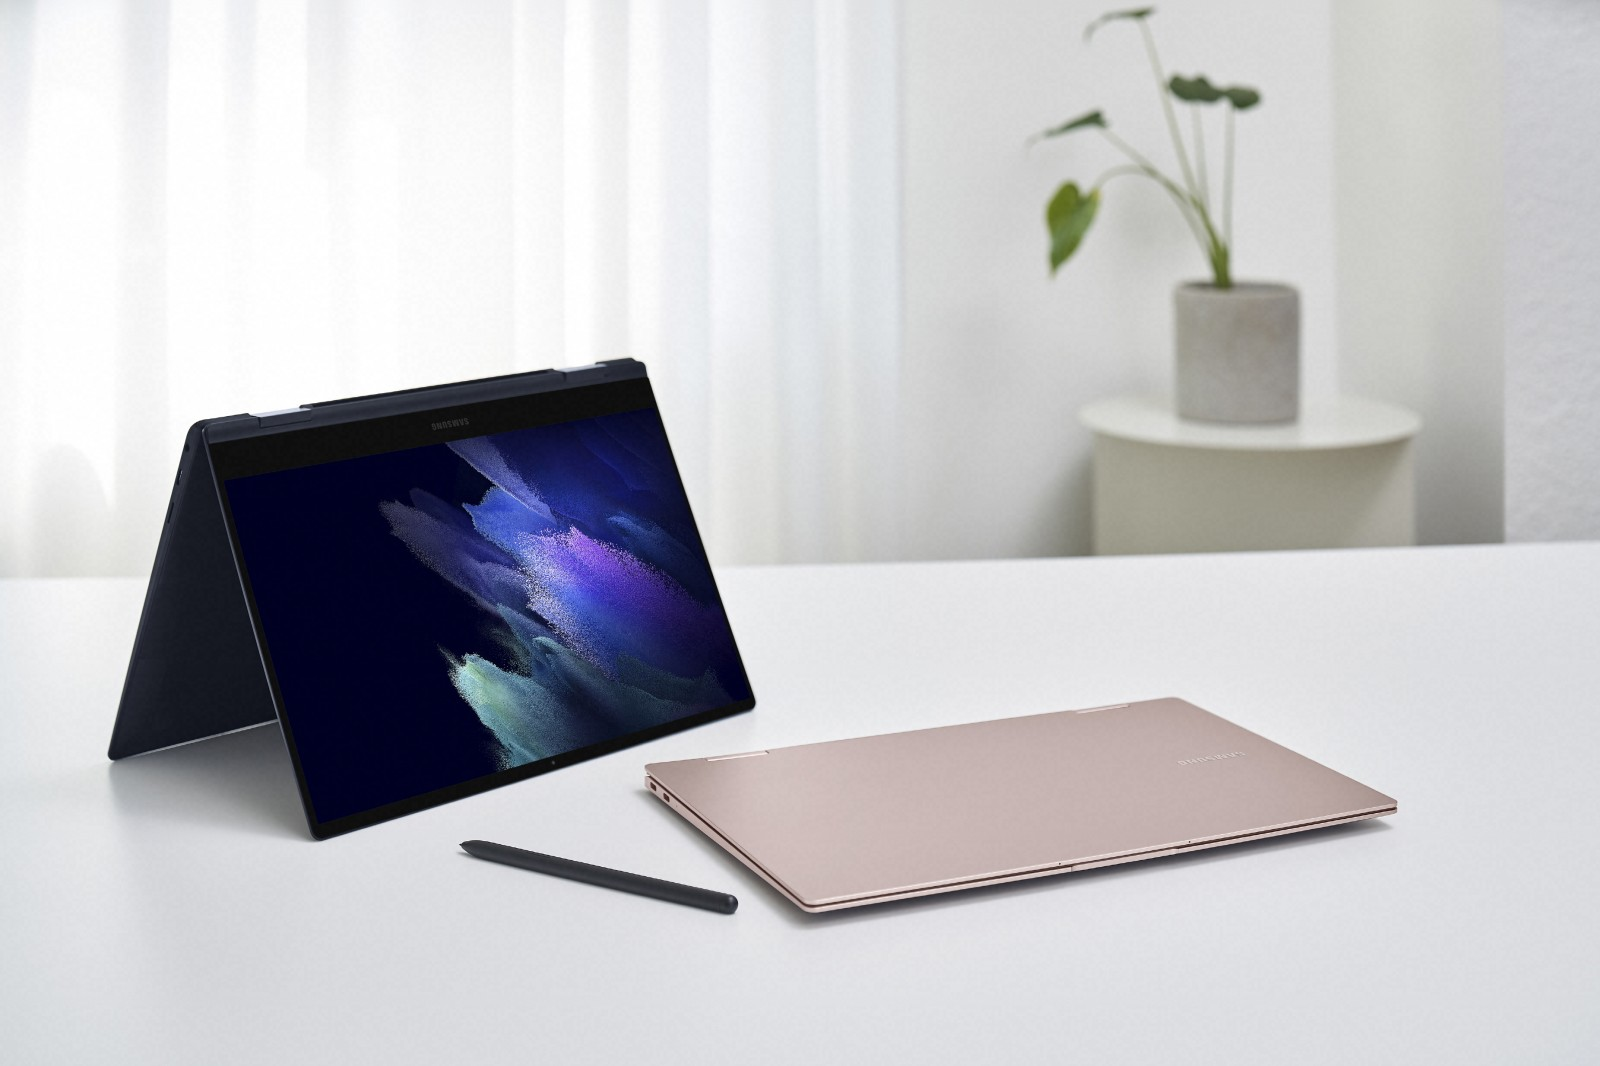 Samsung Unveils 4 New Galaxy Book Laptops Starting From €680